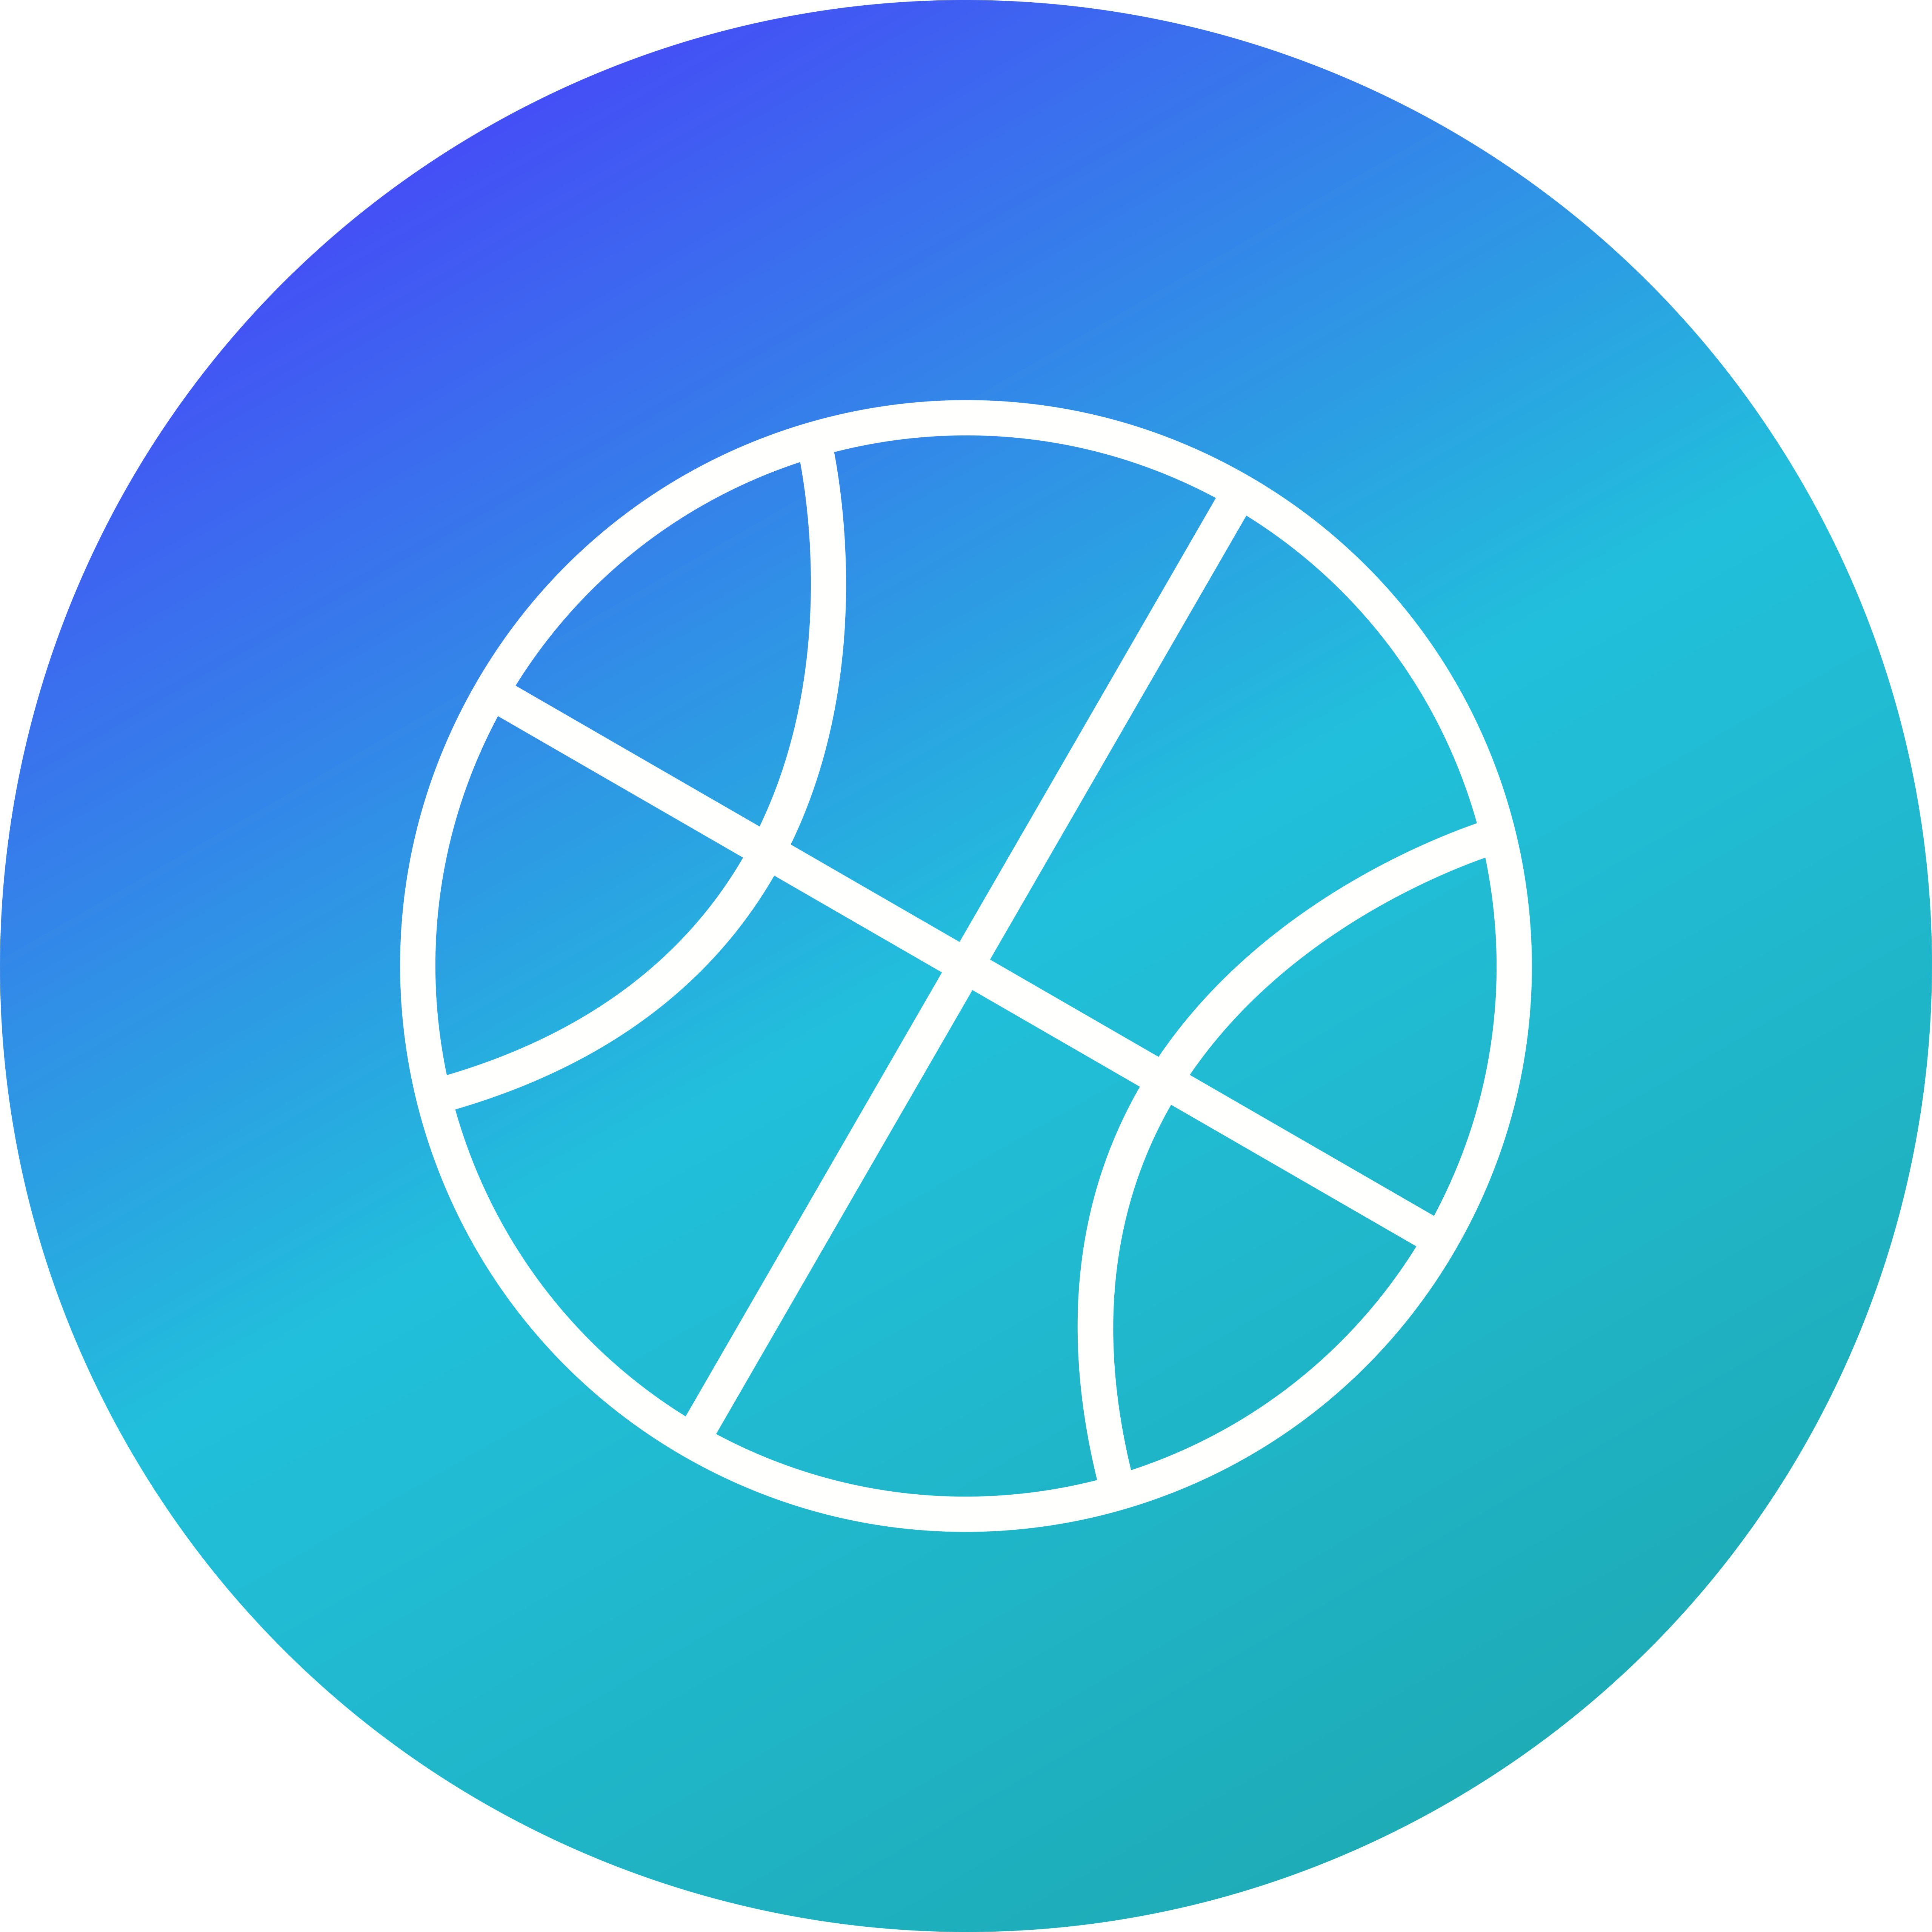 Basketball Icon Vector Illustration - Download Free Vector ...